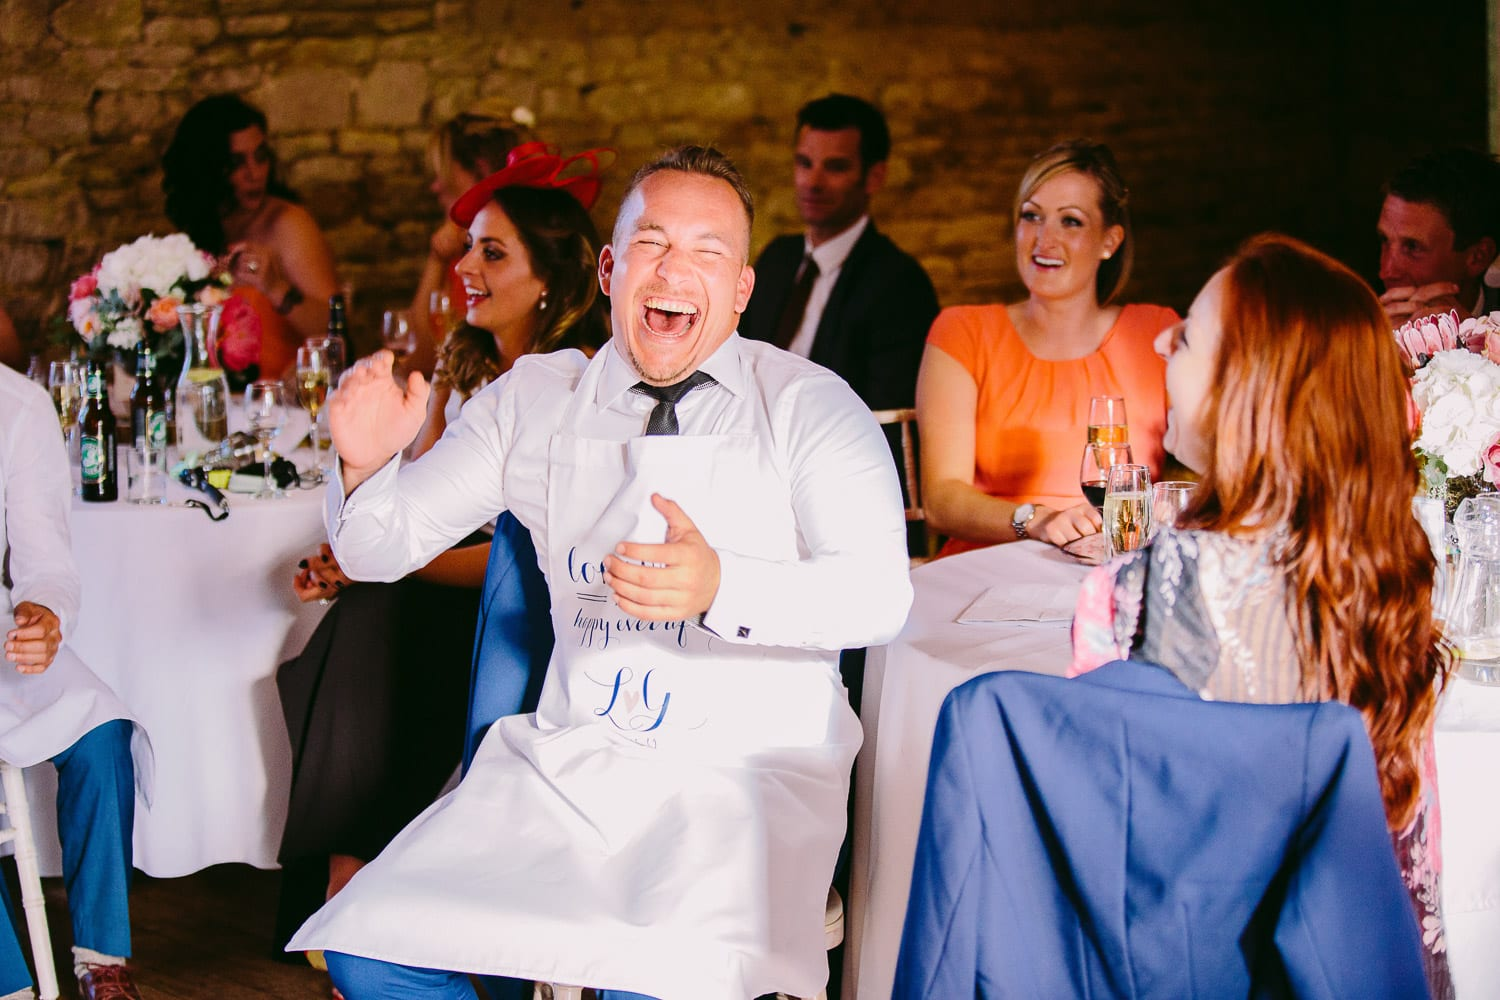 A wedding guest laughing during the speeches